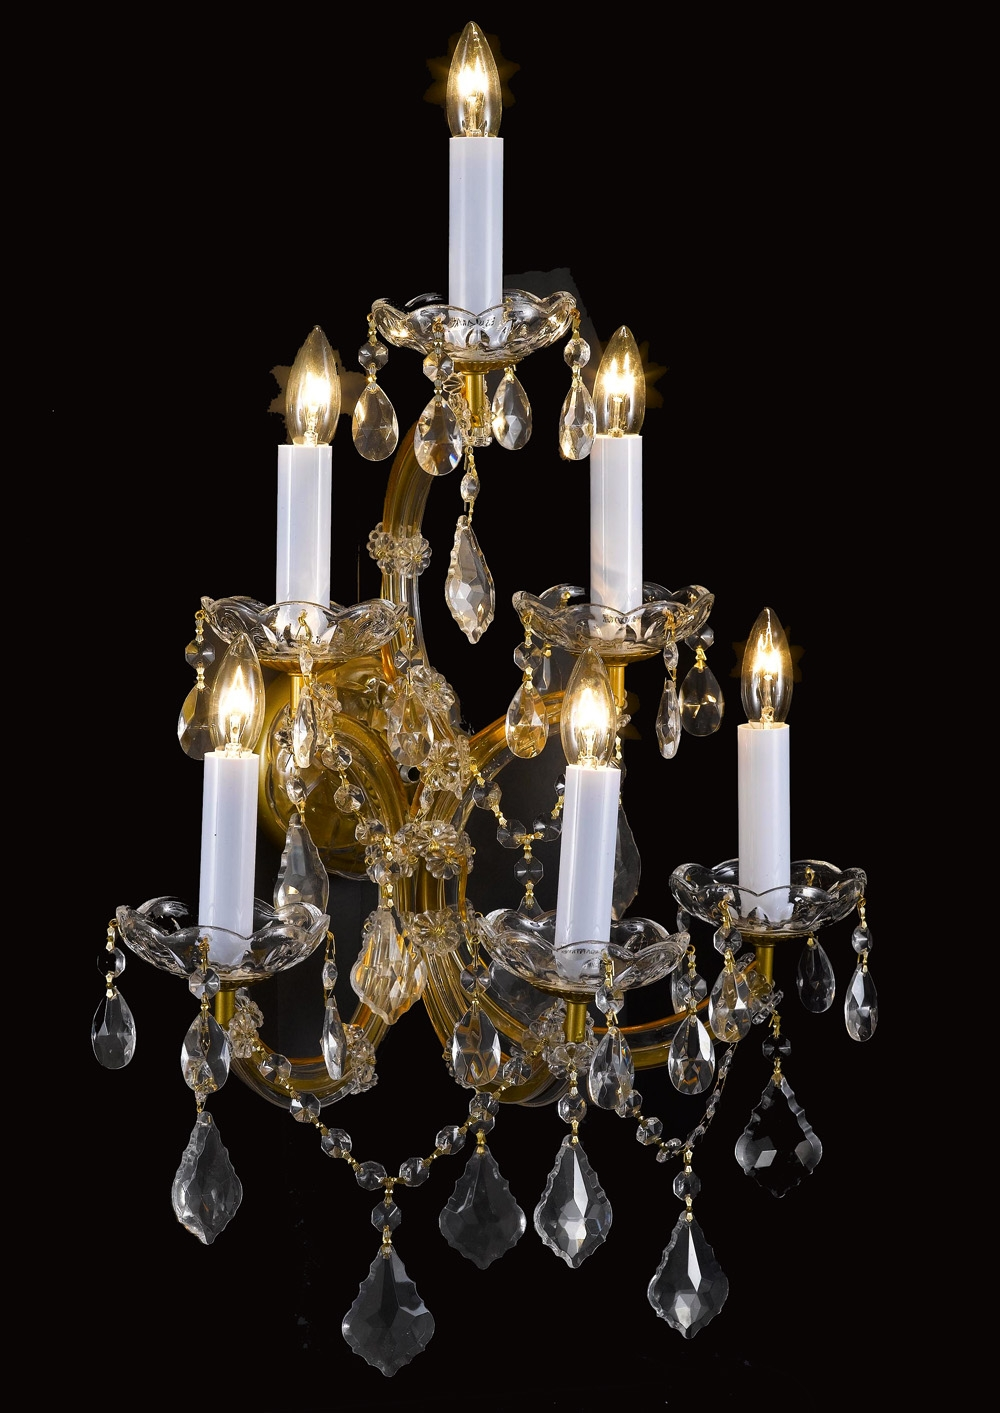 Wall Chandelier Crystal Wall Scones Wall Lighting Fixtures With Regard To Chandelier Wall Lights (Image 12 of 15)